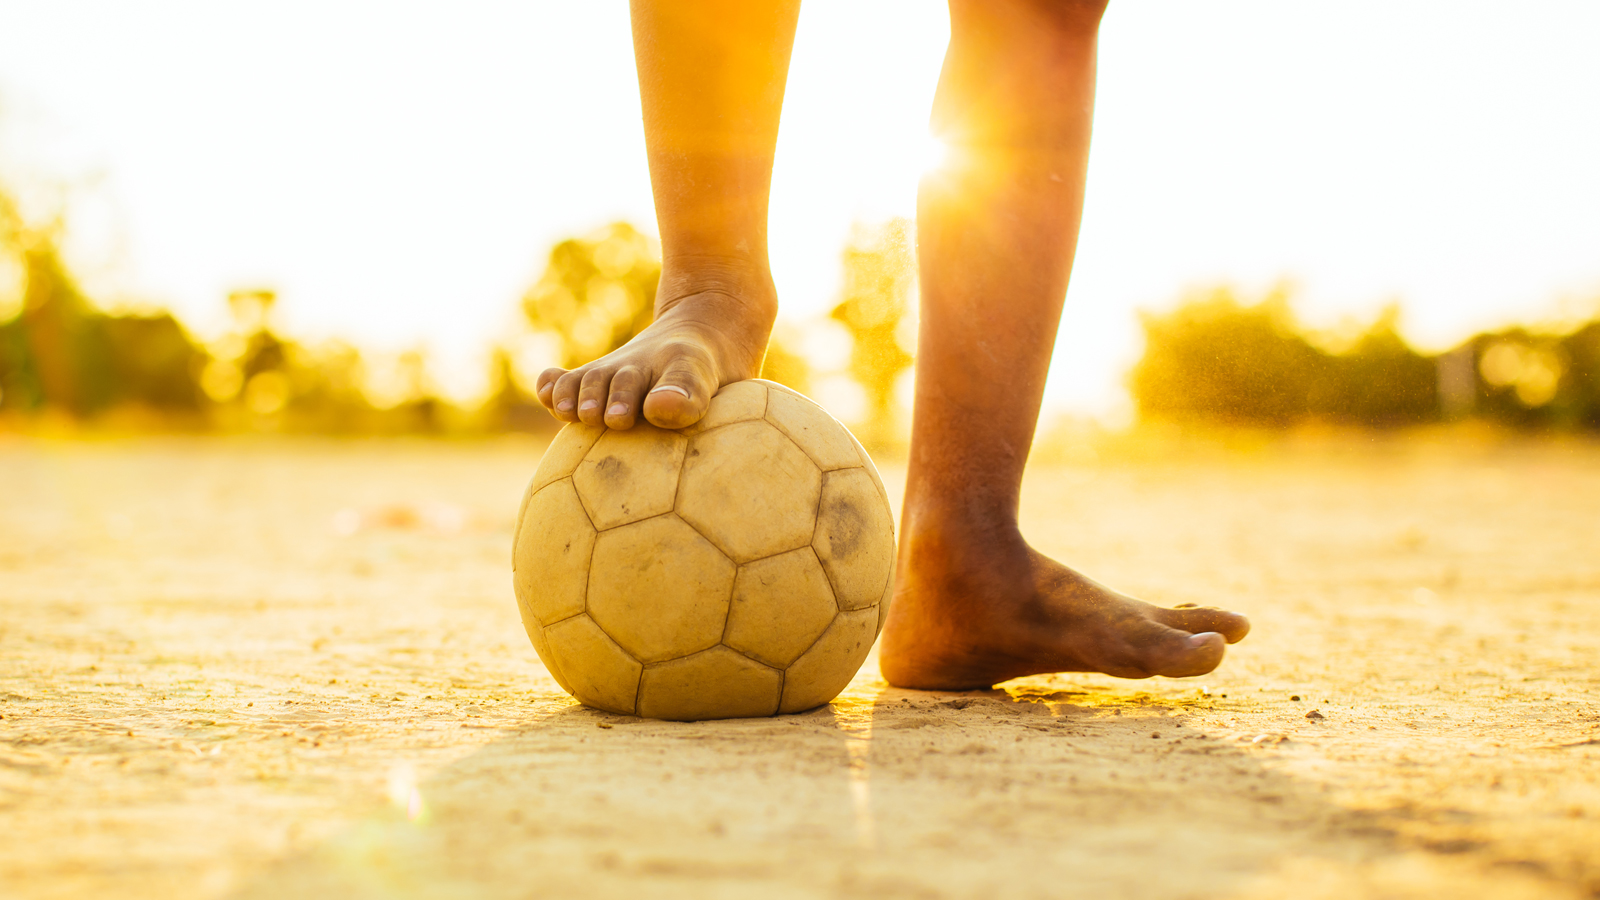 Photo of bare foot on soccer ball